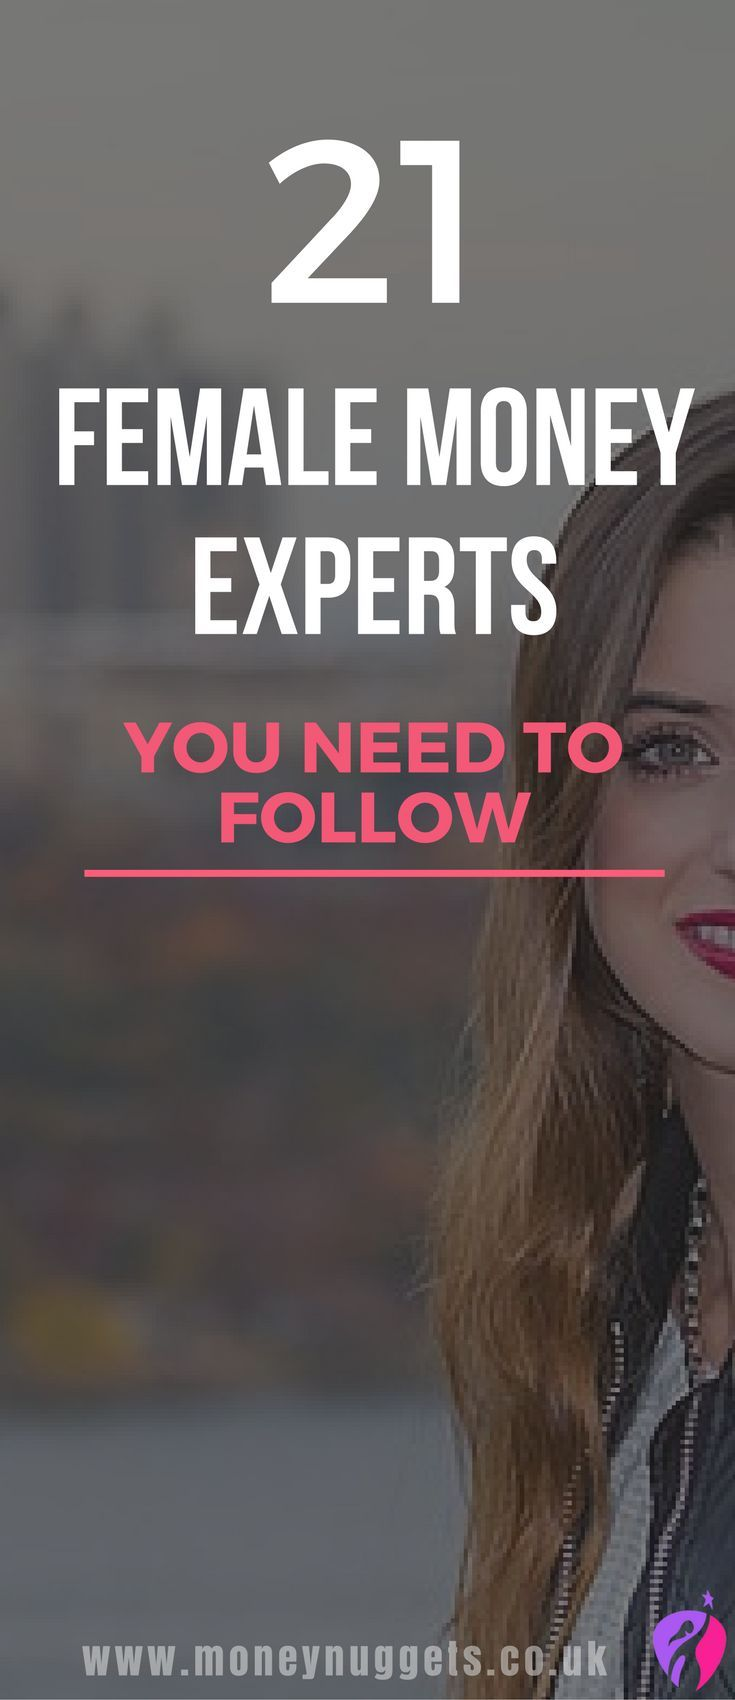 Do you lie awake at night worrying about money? Do you want to put together a financial plan but don't know where to start? Or do you have a plan but struggle to follow it? We've put together a list of some of the leading women money experts who can help you achieve your financial goals this year. Check them out now.